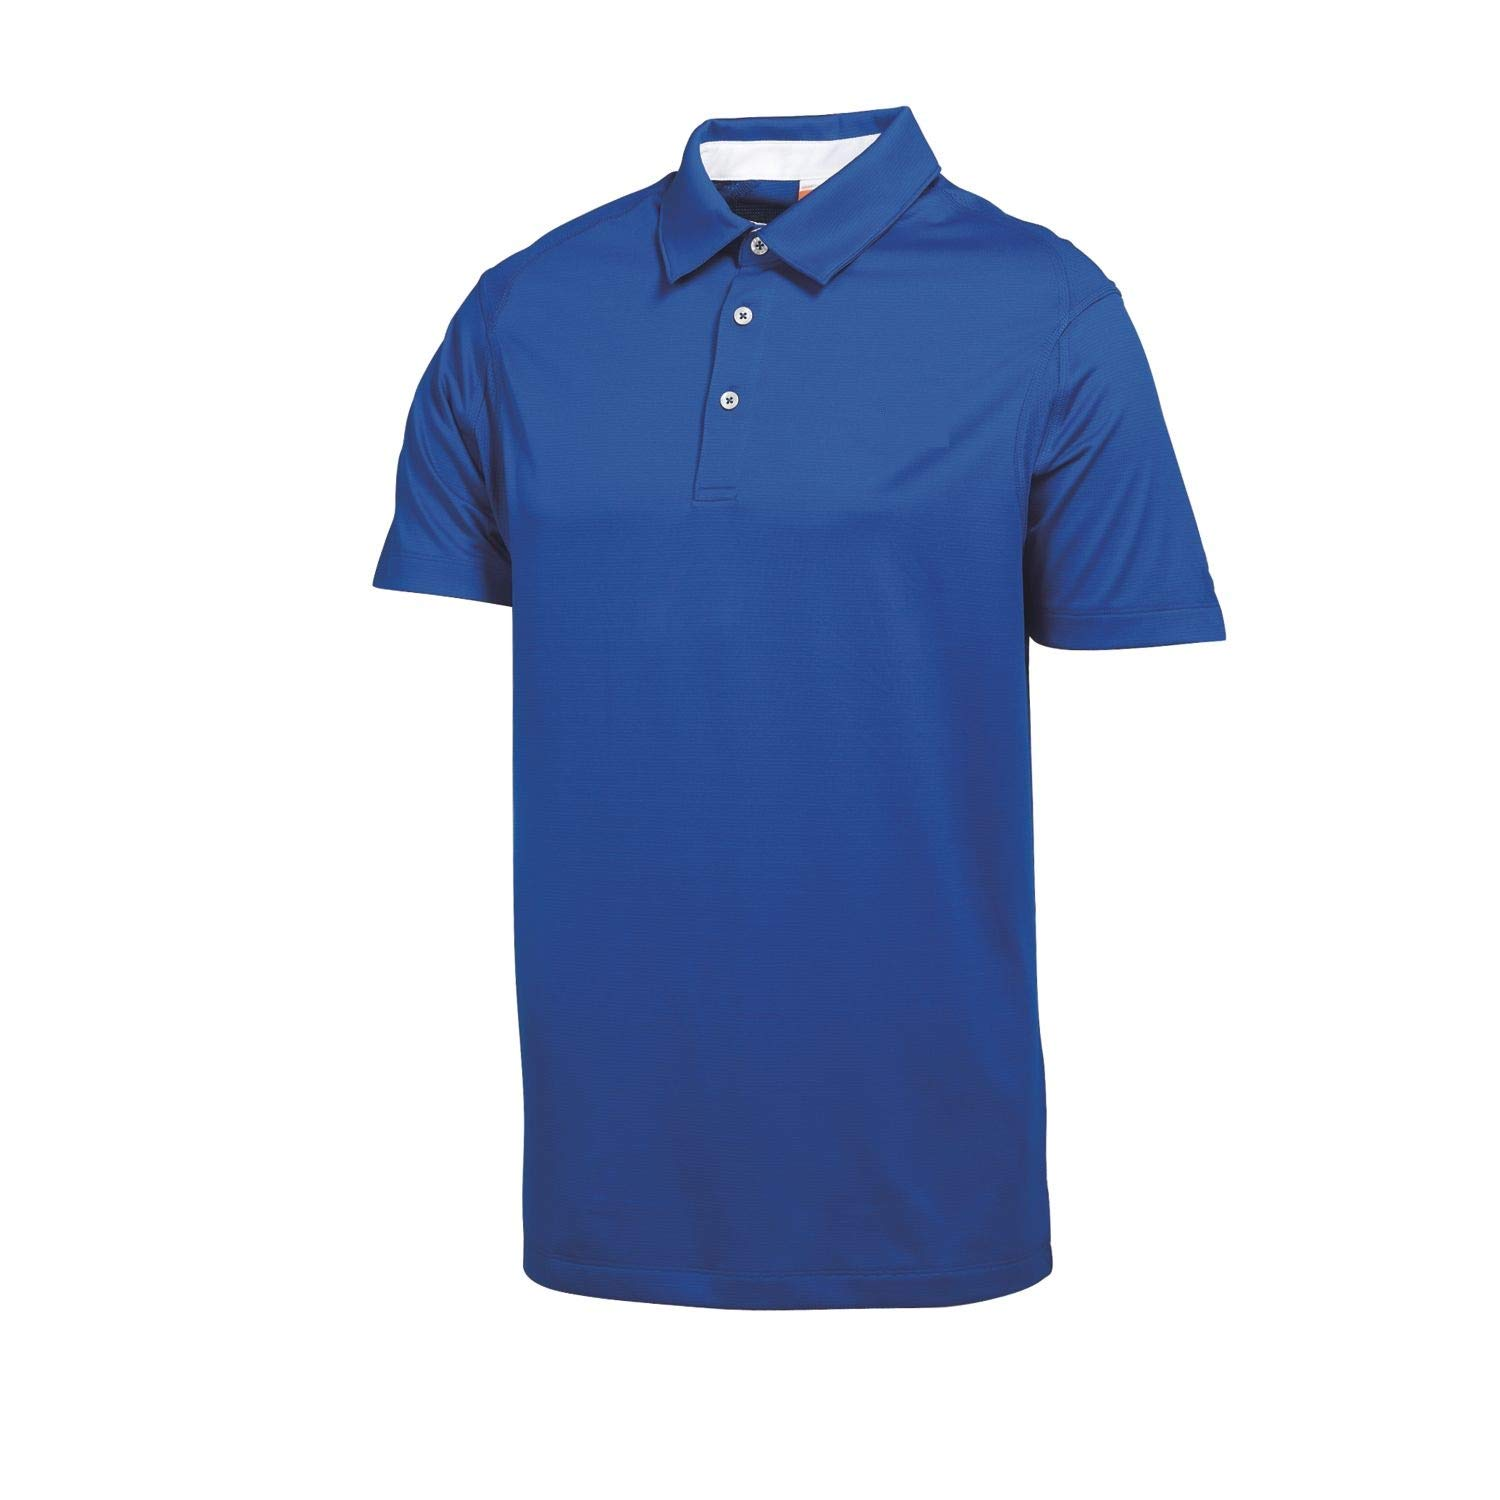 Puma Golf Boy's Tech Polo Tee, Surf The Web Blue, Small by PUMA